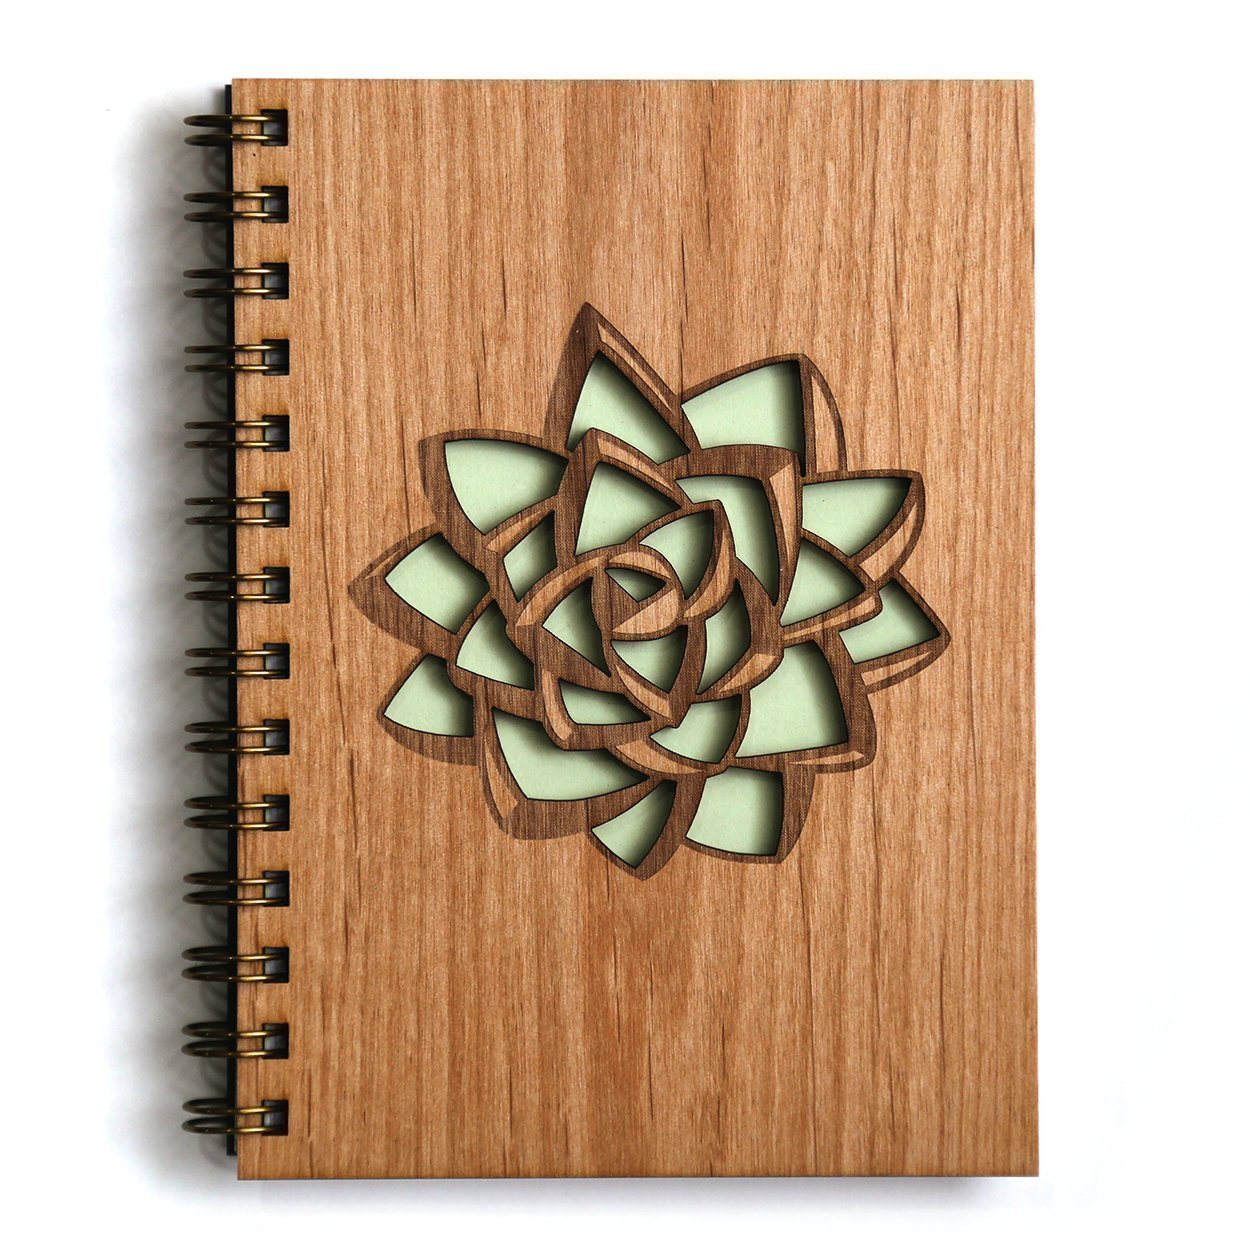 Succulent Laser Cut Wood Journal (Notebook/Birthday Gift/Gratitude Journal/Handmade)